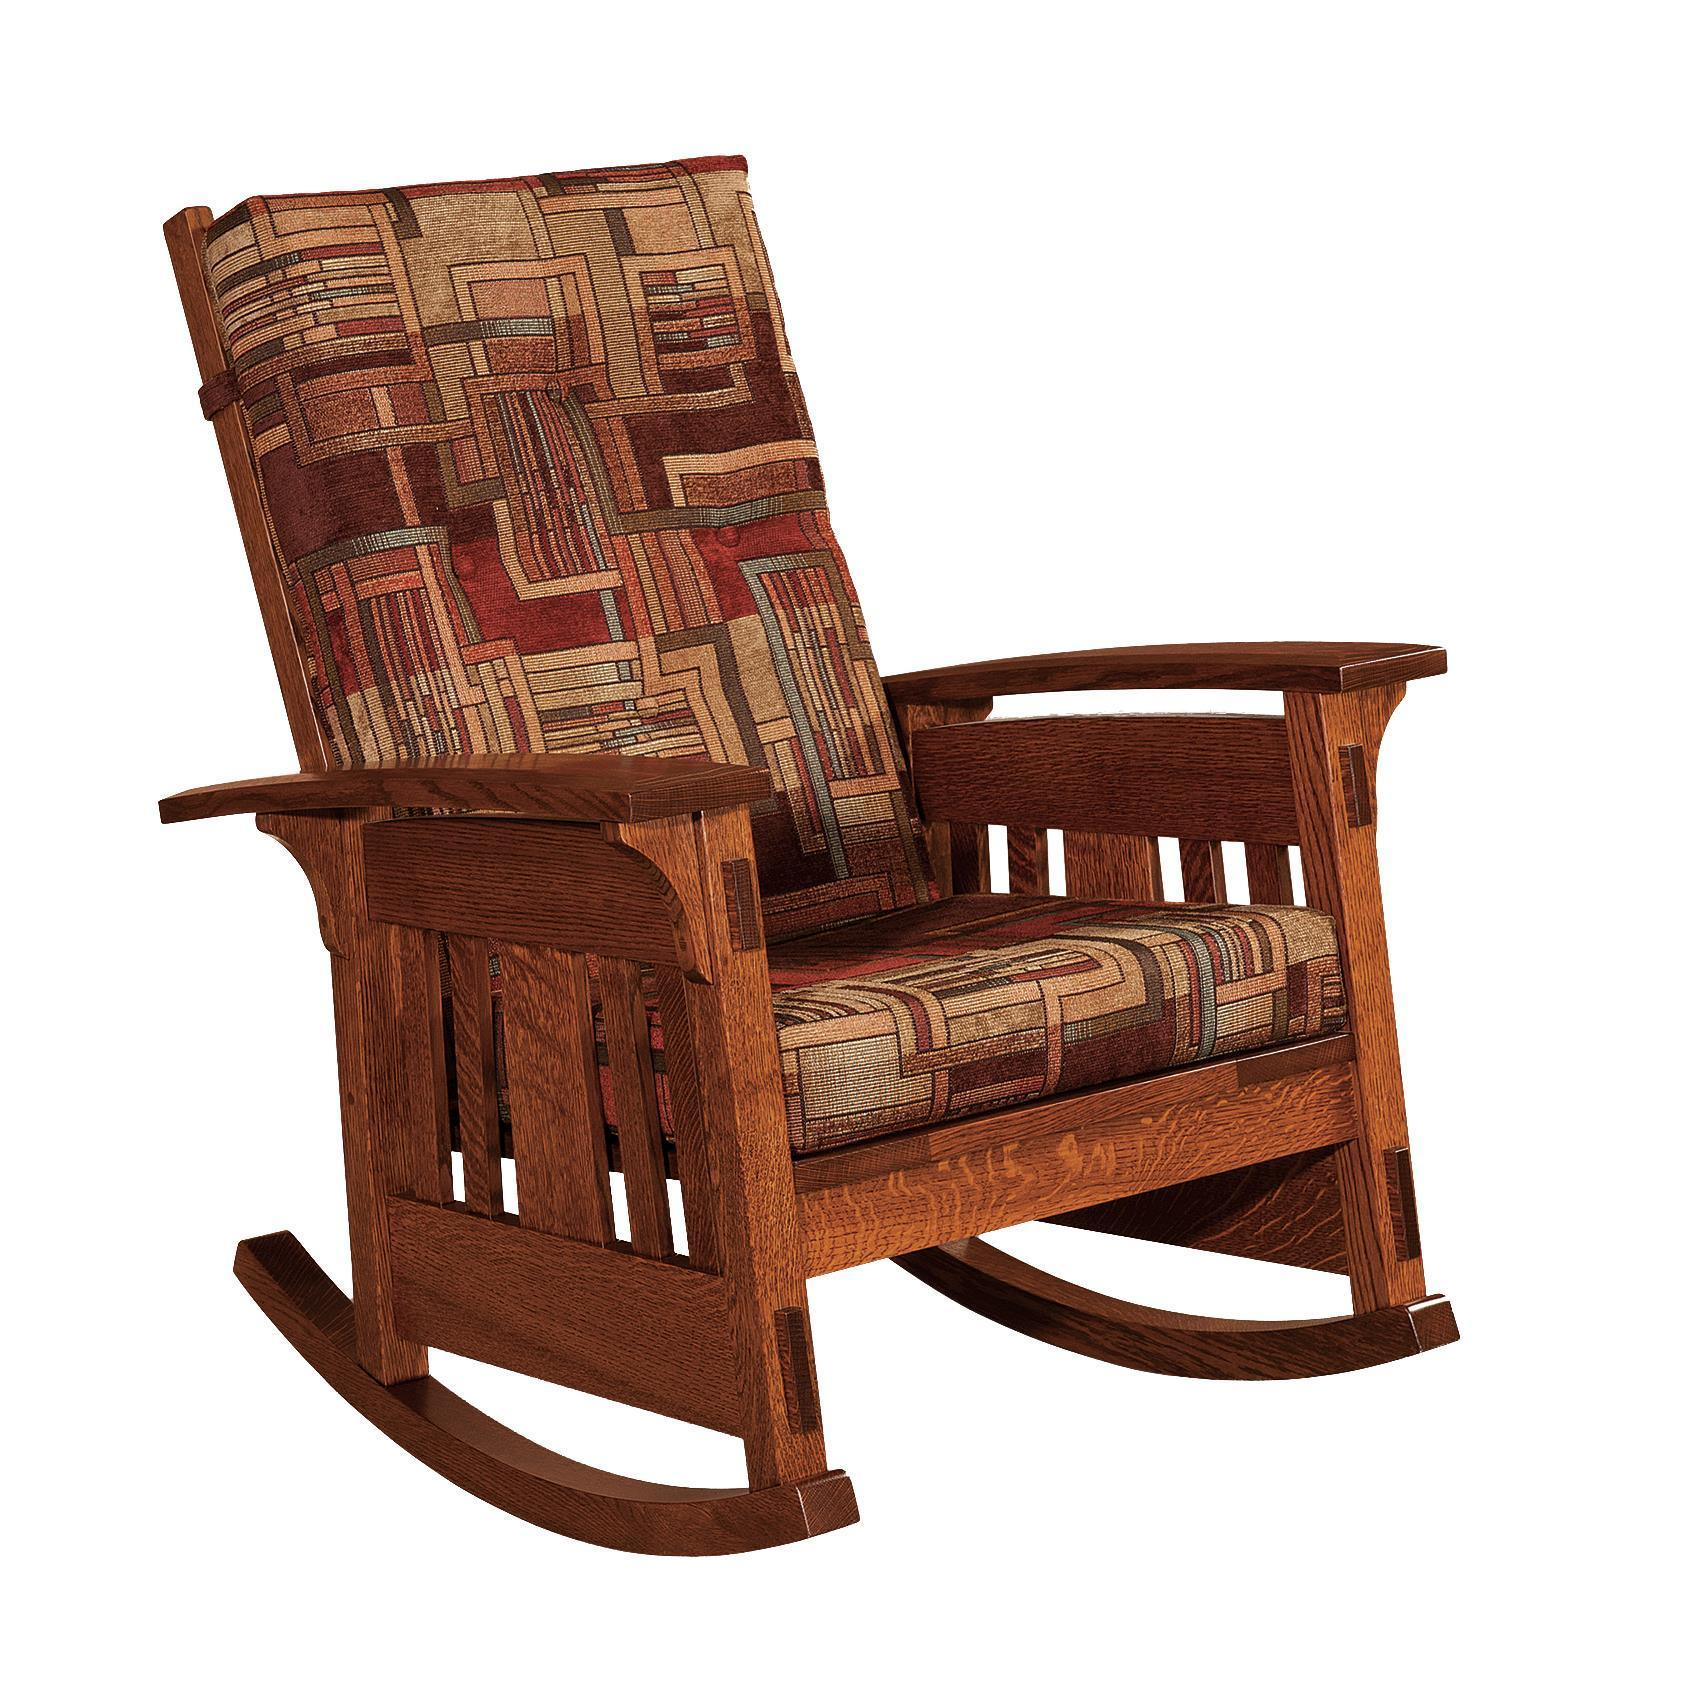 Mccoy Mission Upholstered Rocking Chair From Dutchcrafters